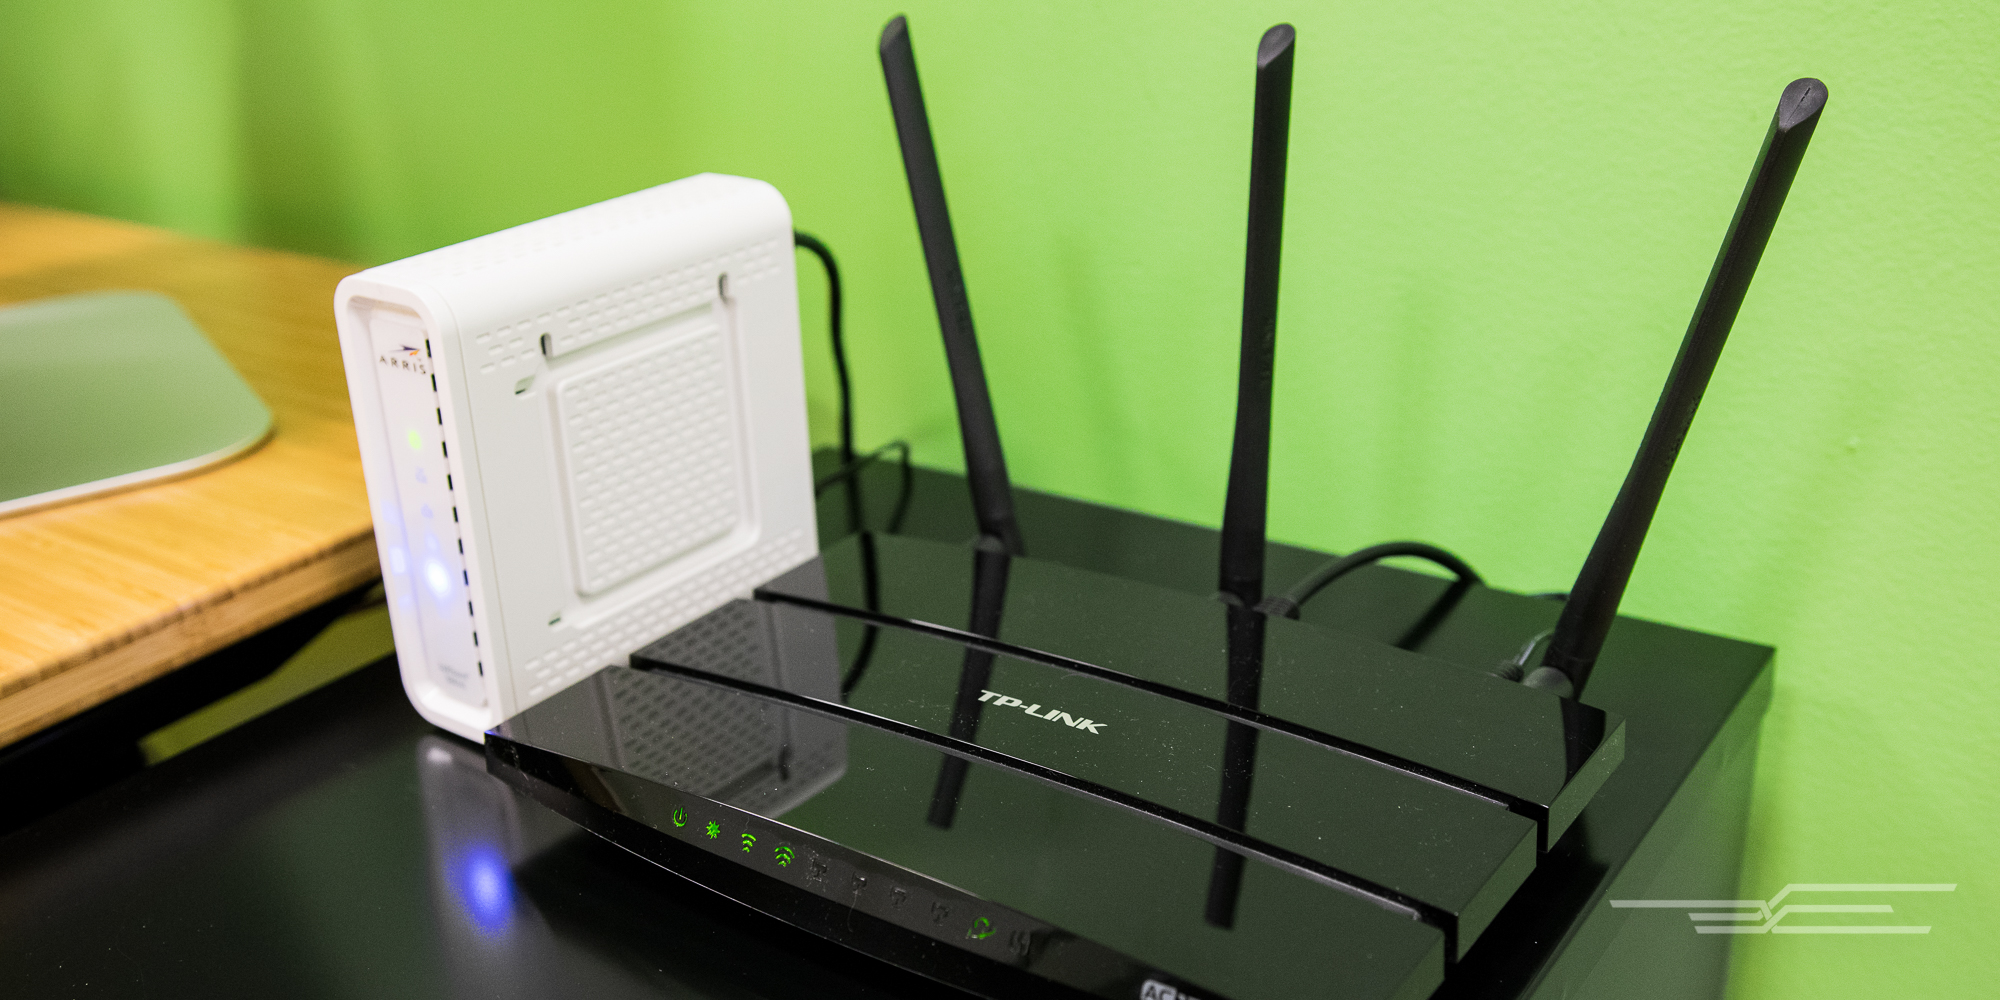 11-home-office-engadget-router-modem-2000